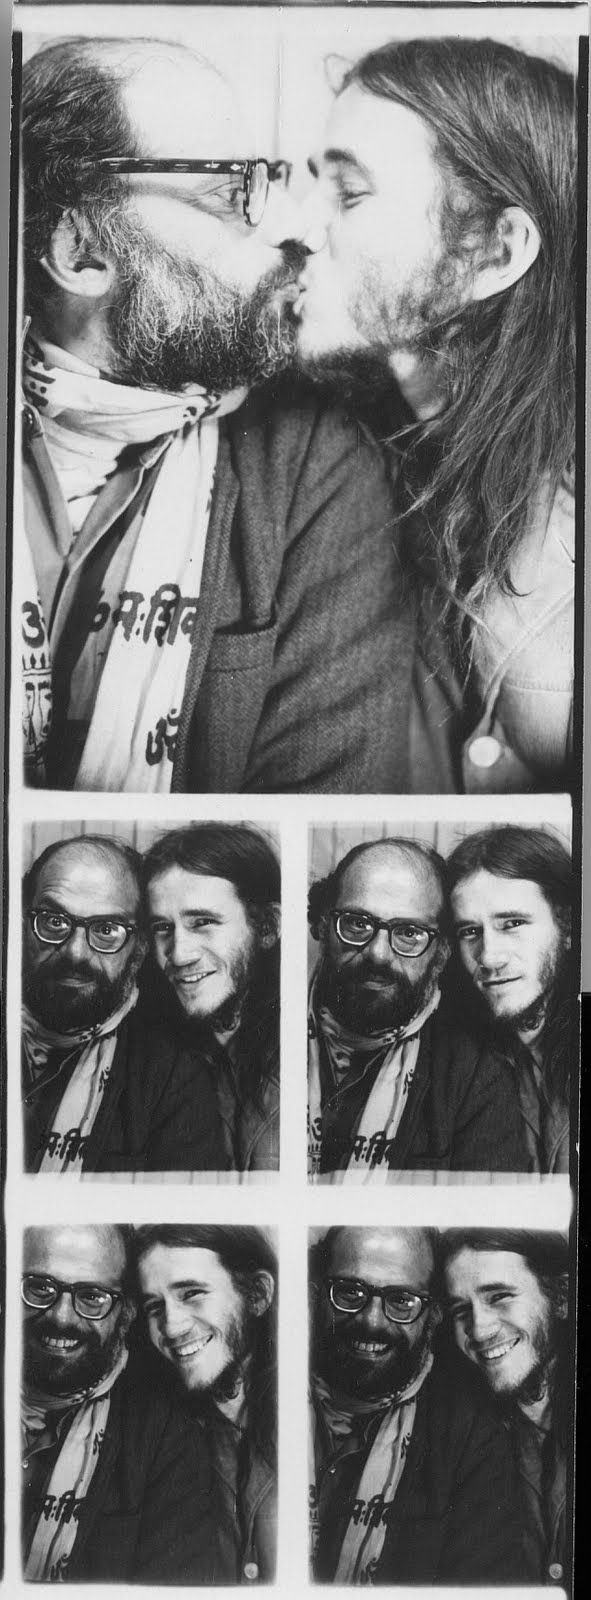 Allen Ginsberg and Peter Orlovsky